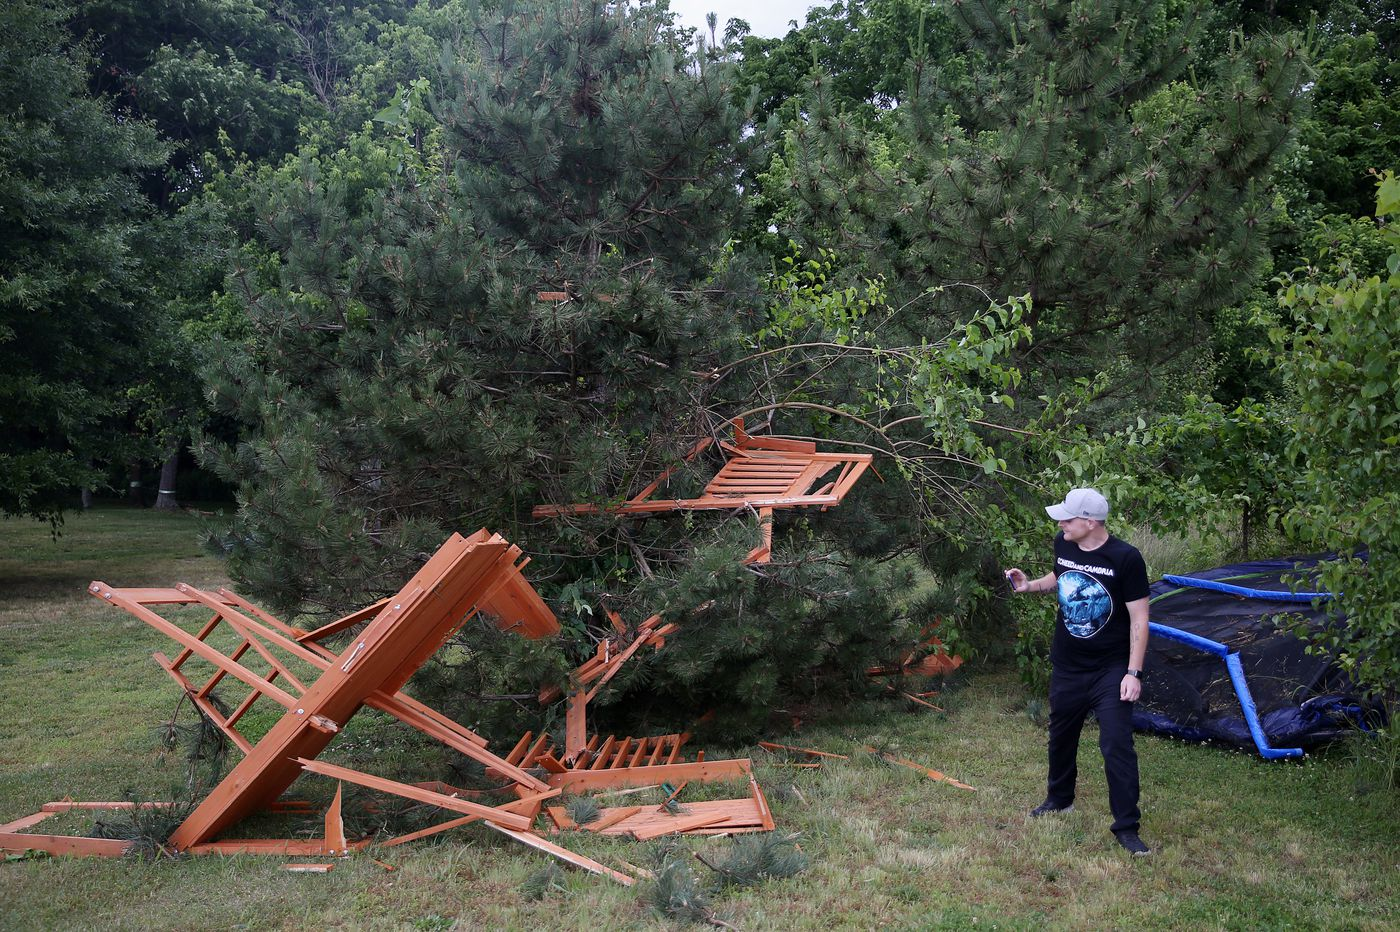 Tornadoes touch down in South Jersey: 'It just happened so fast' on zip codes for south jersey, pump station map south jersey, map of route 80 exit 12 new jersey, lakes and rivers in south jersey,